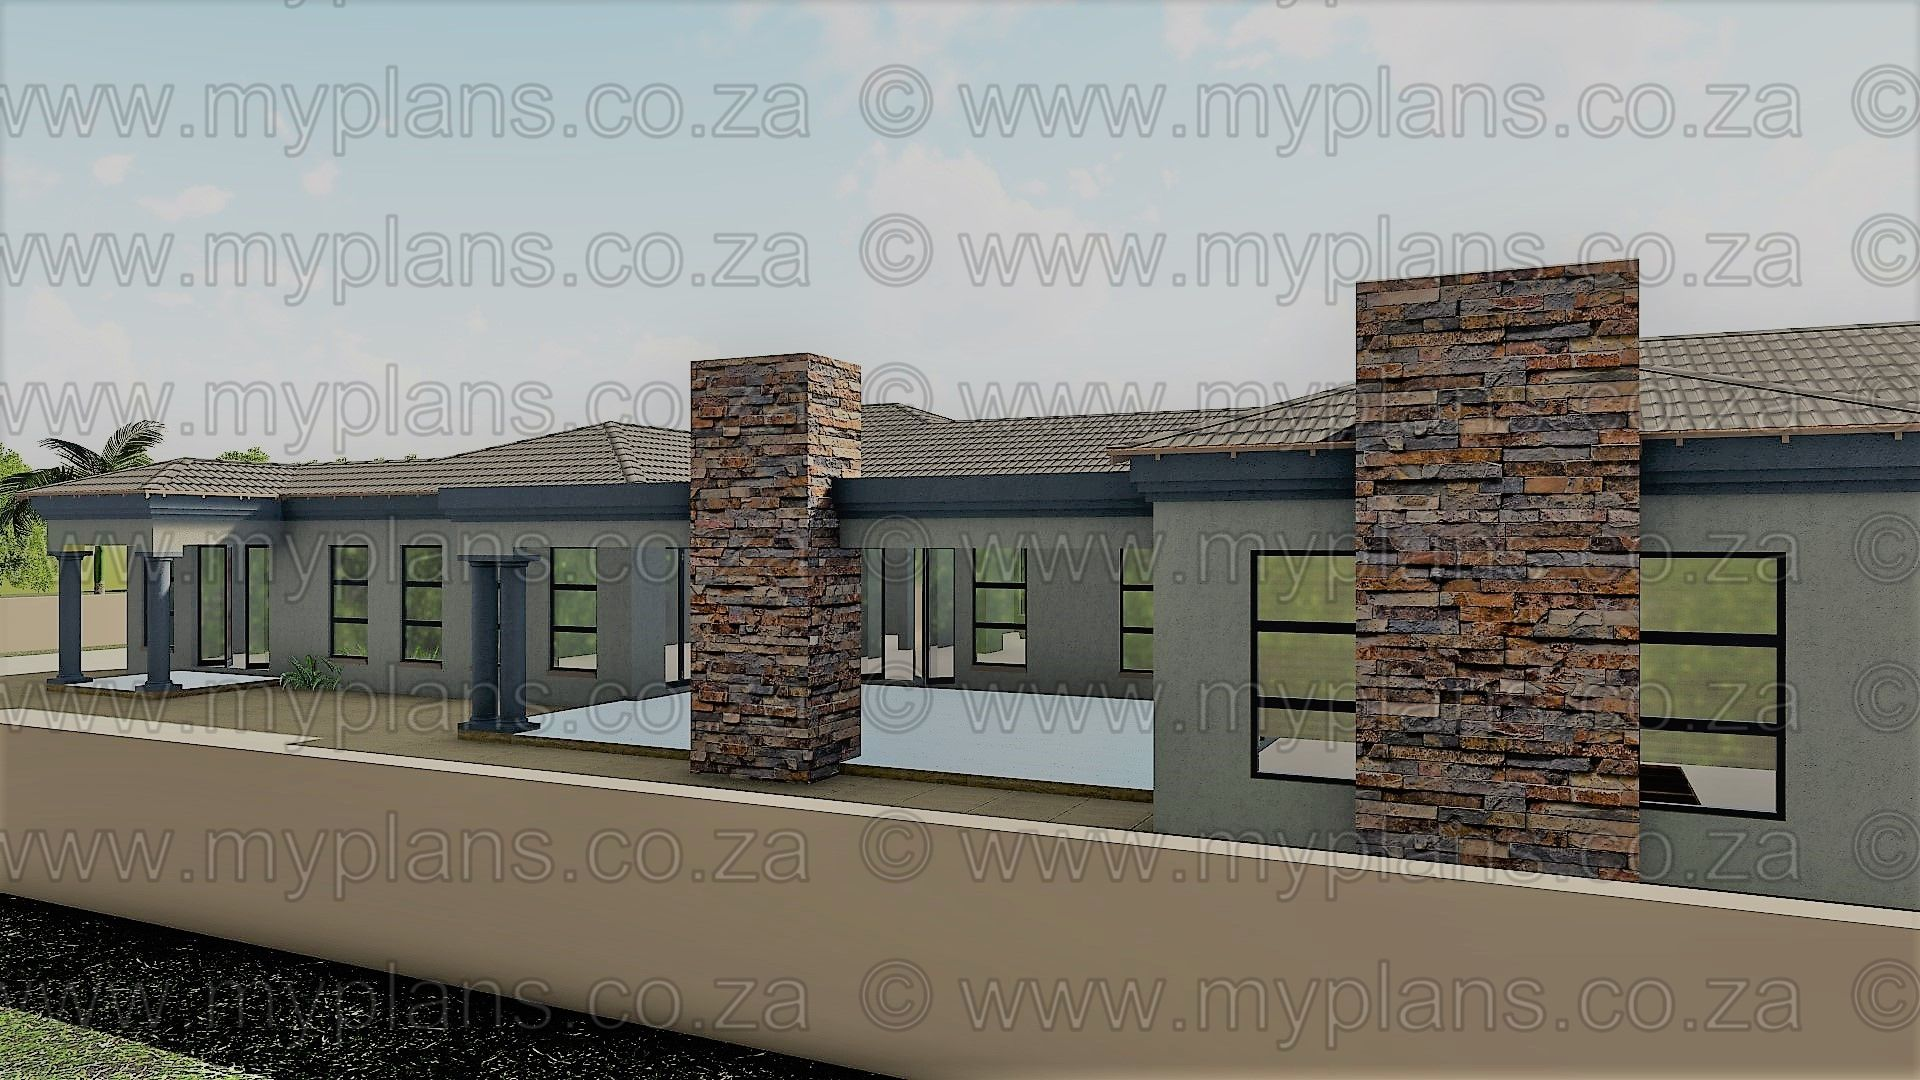 4 Bedroom House Plan Mlb 058 1s Beautiful House Plans 4 Bedroom House Plans My House Plans